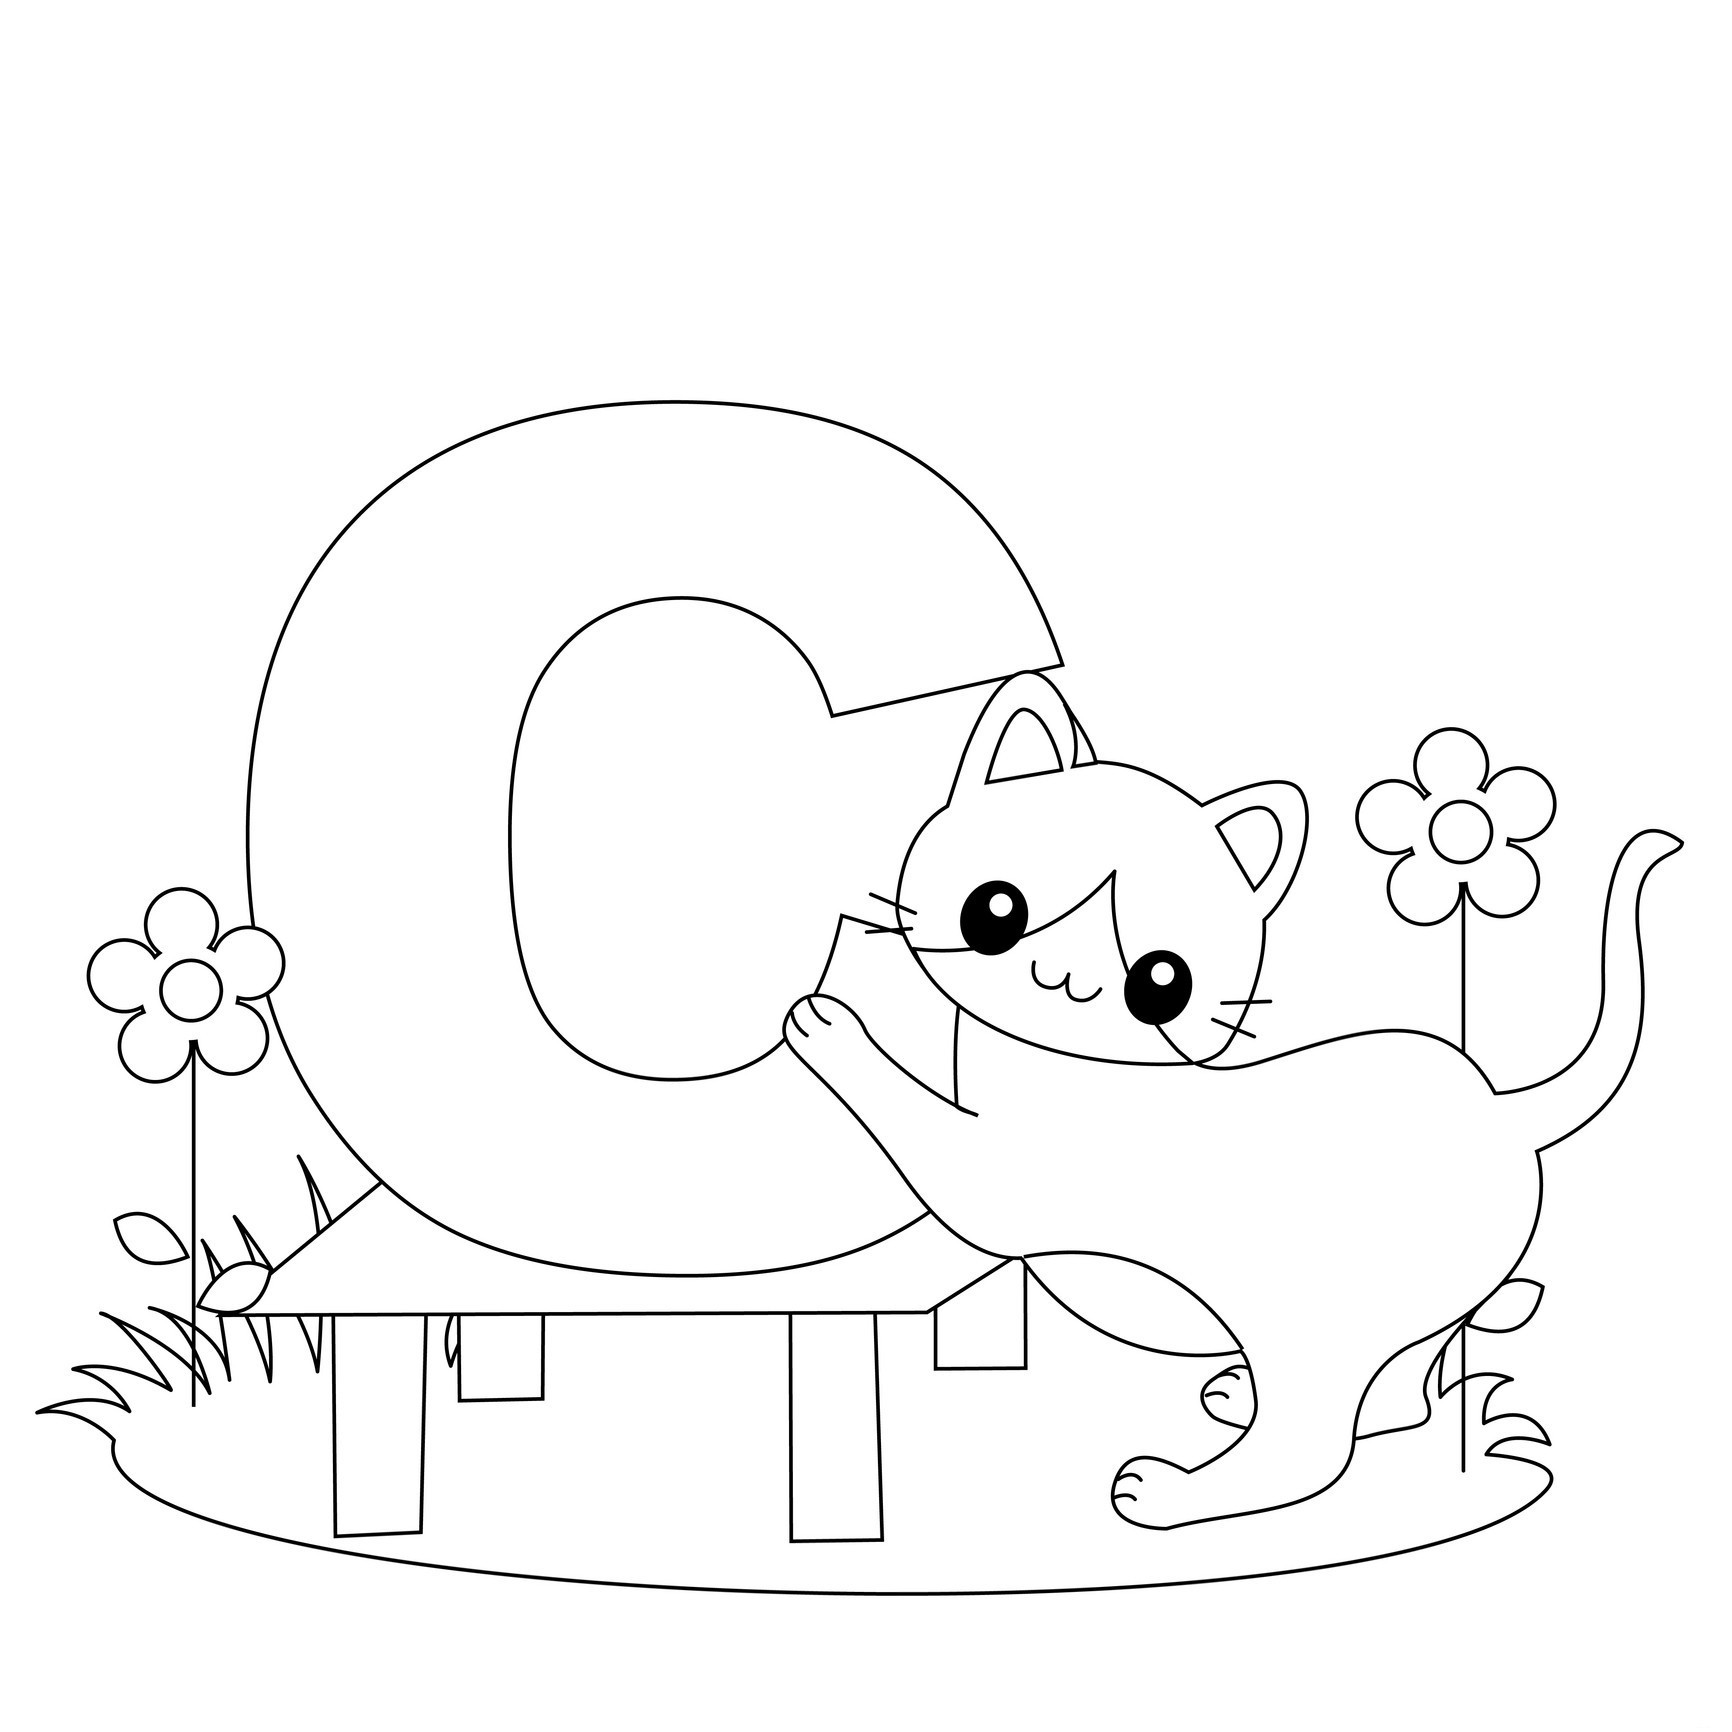 1732x1732 Coloring Pages For Alphabet Free Fresh Free Printable Alphabet